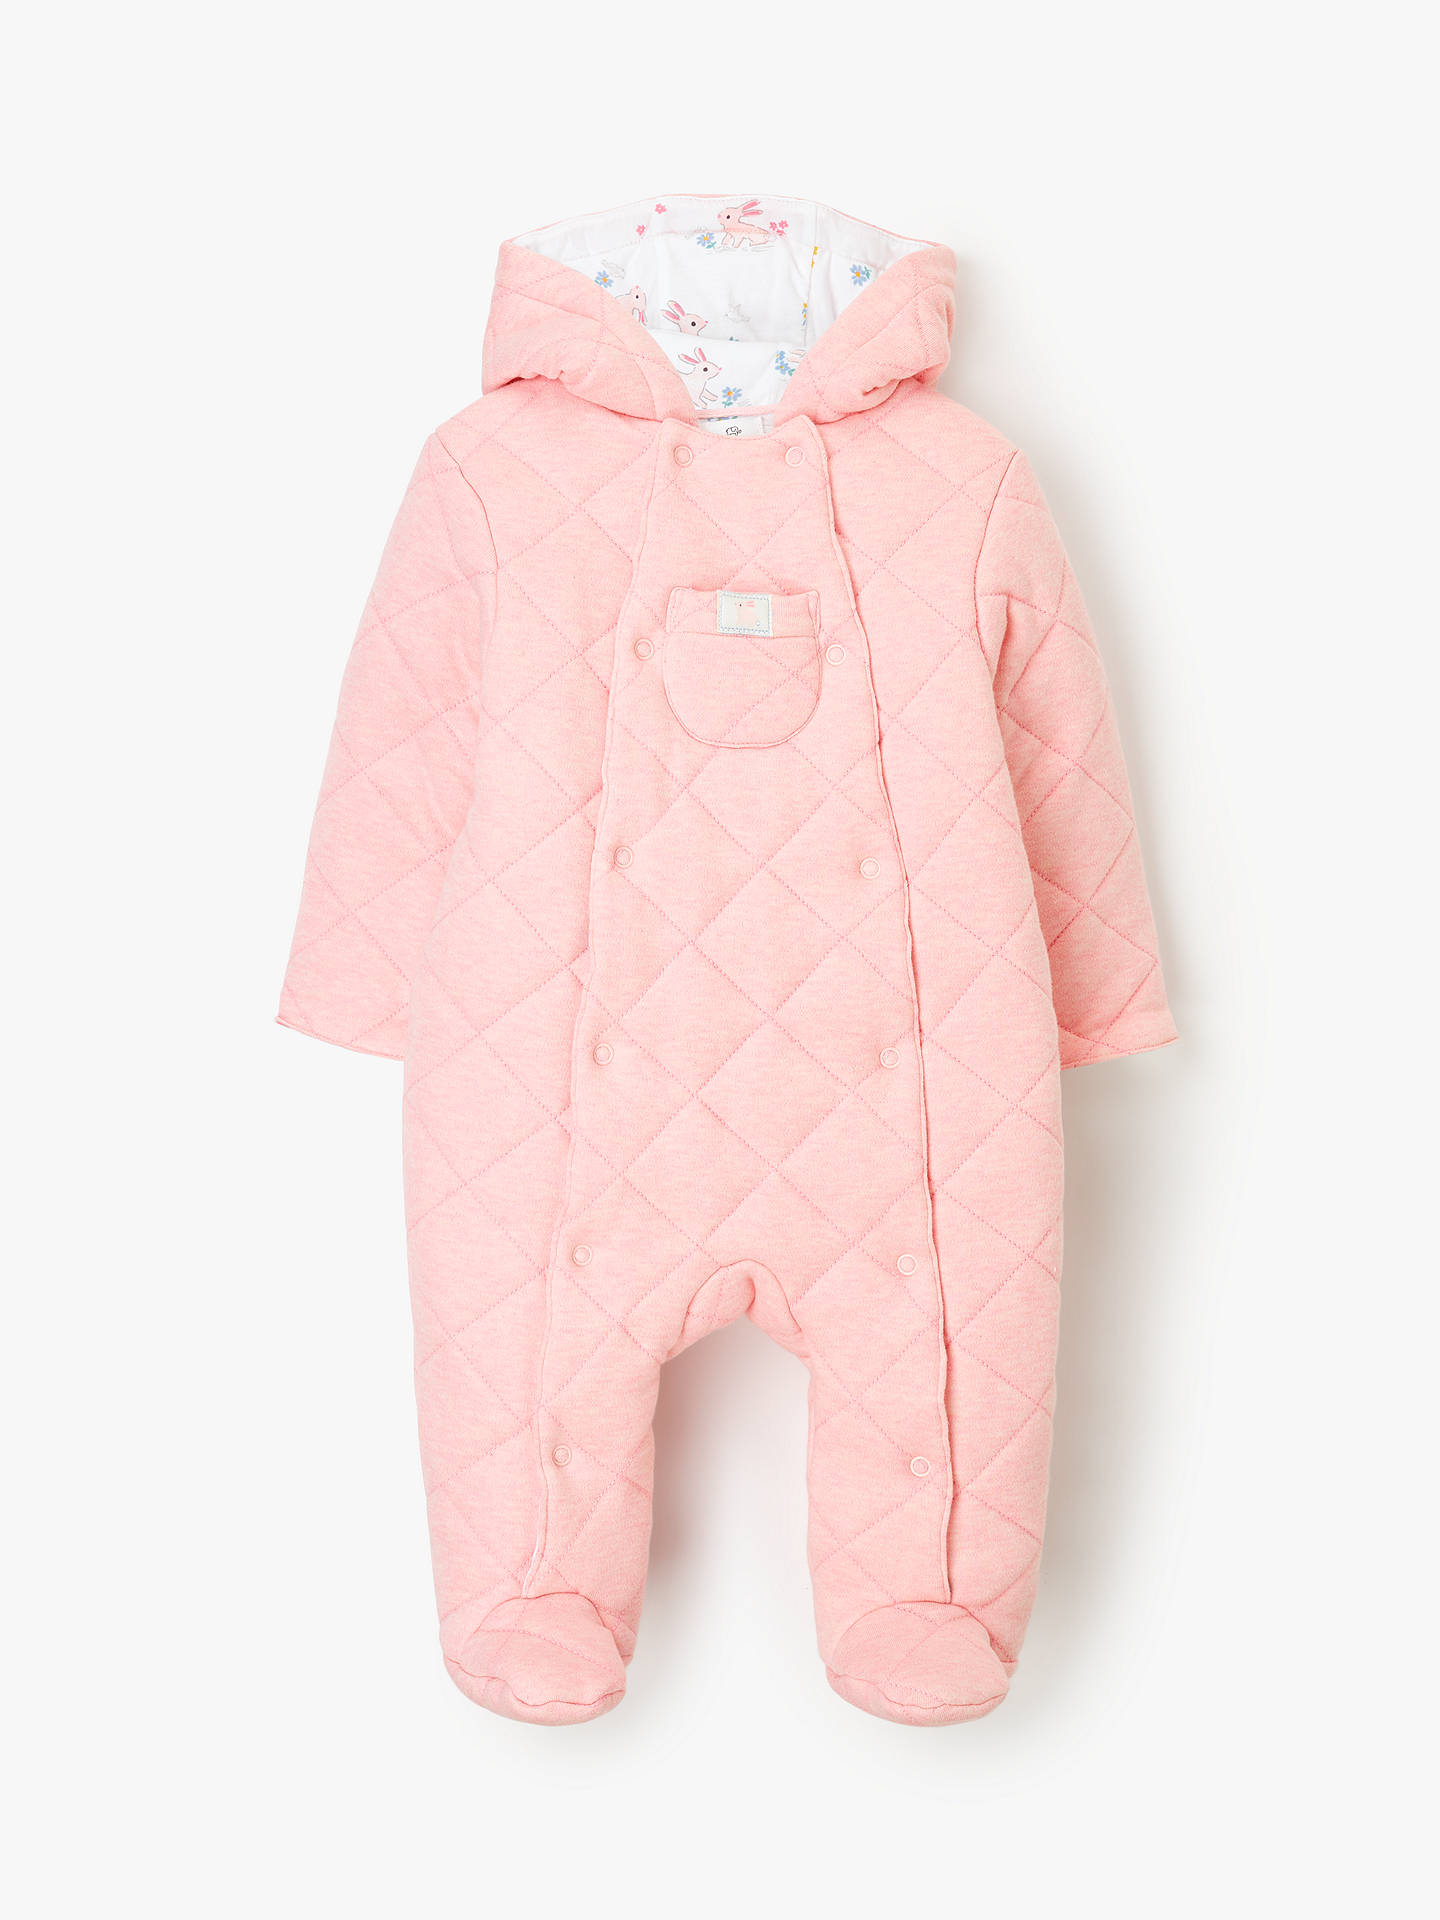 45cb3ea83712b Buy John Lewis & Partners Baby Quilted Pramsuit, Pink, Newborn Online at  johnlewis.